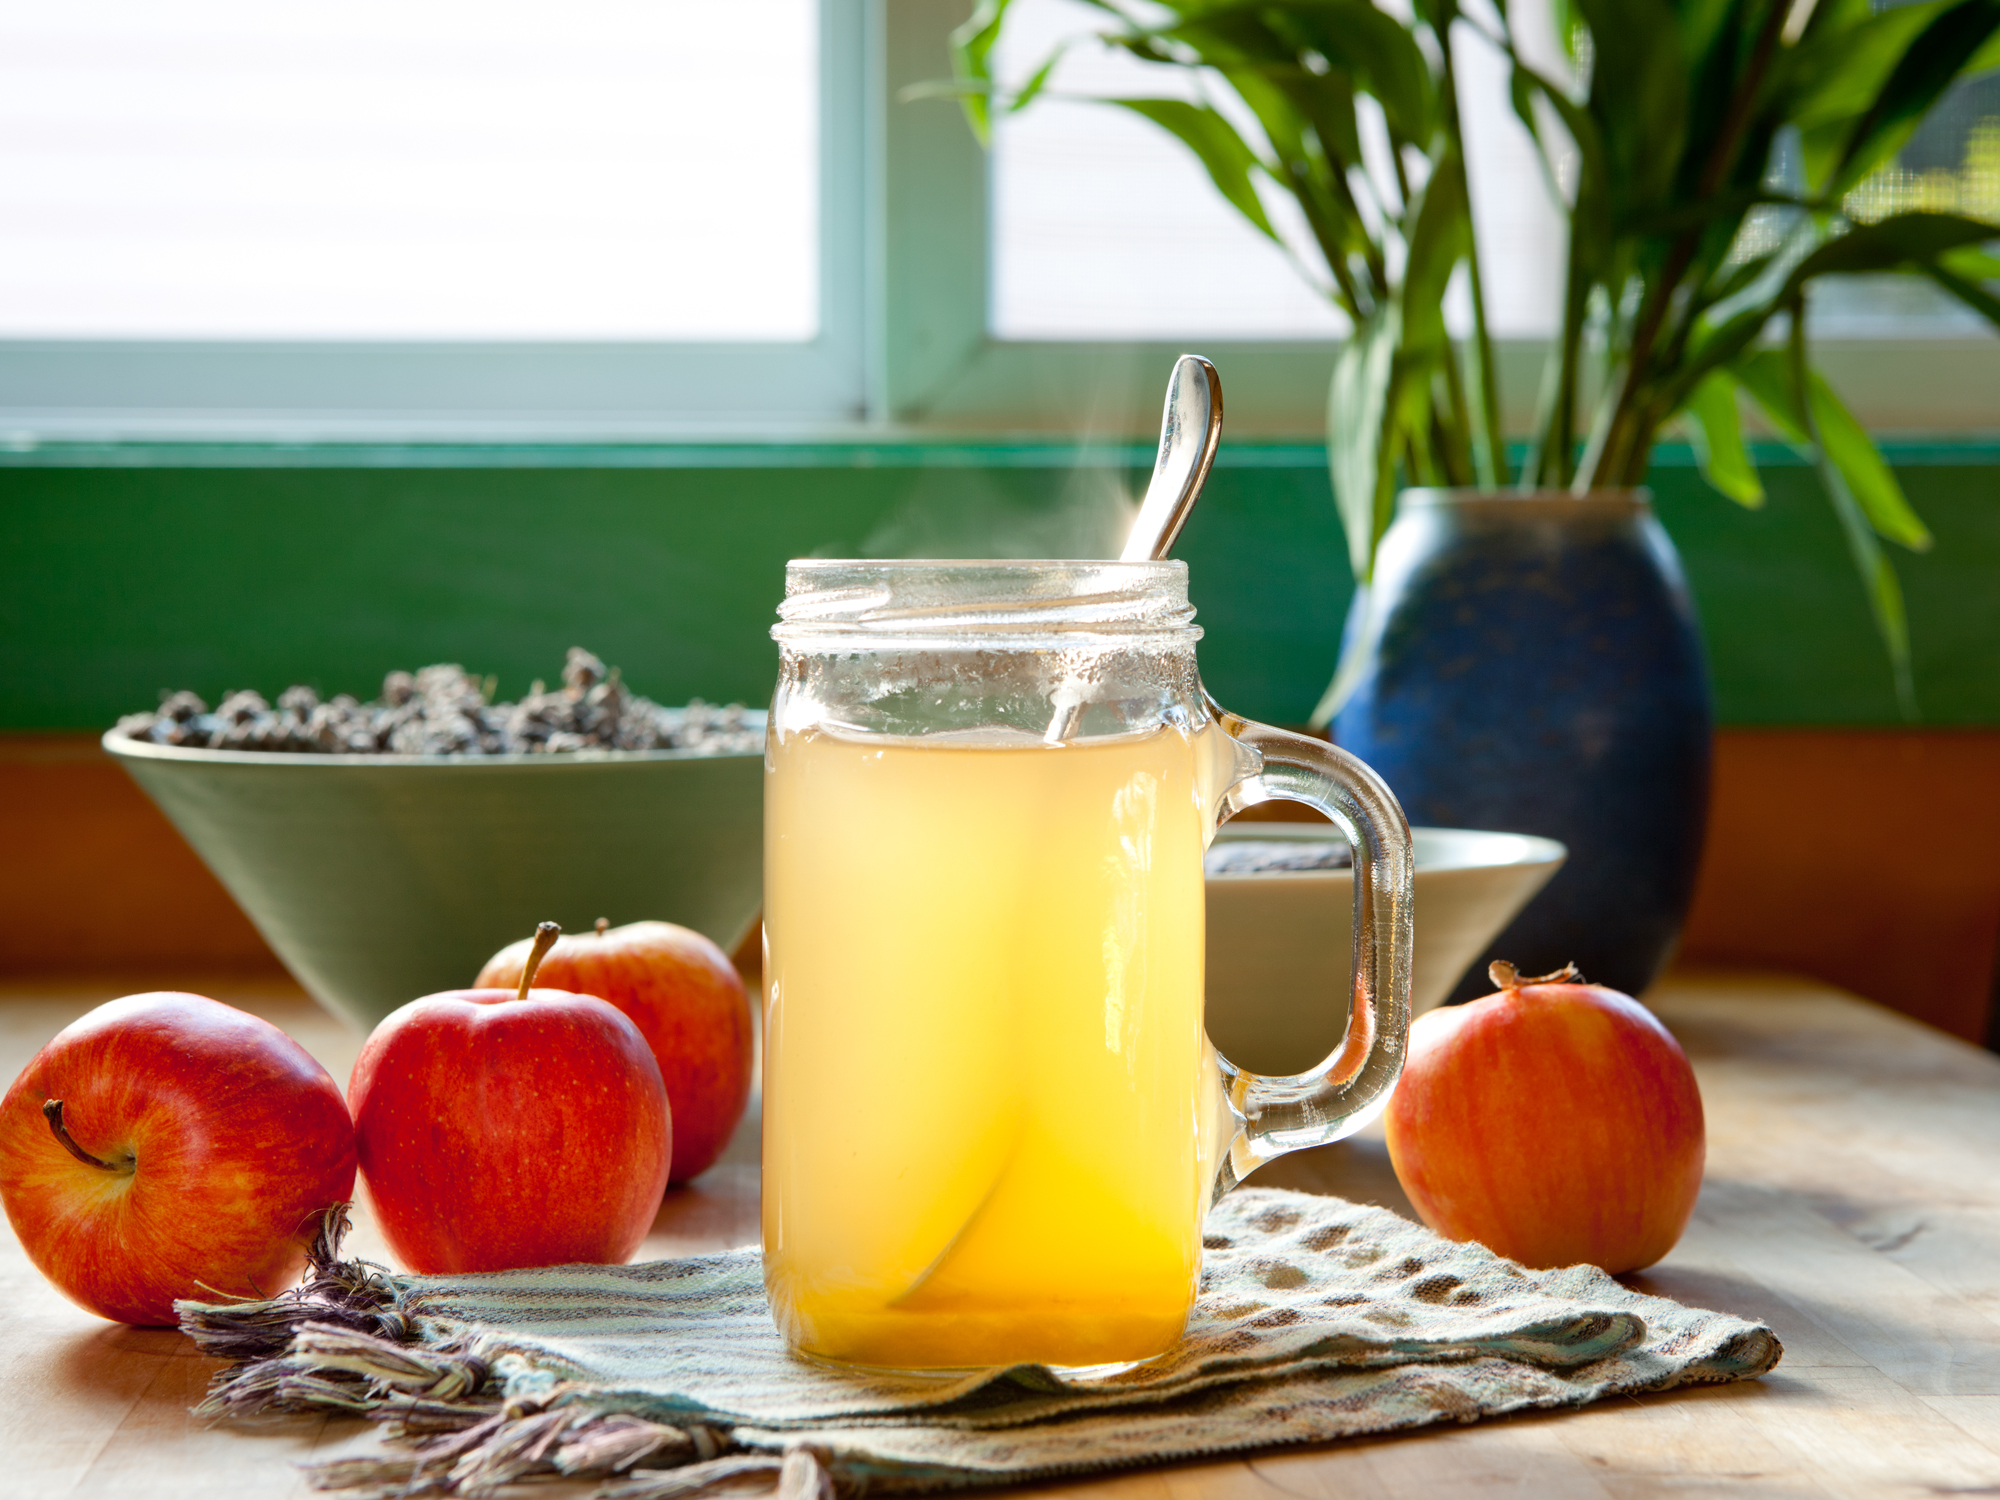 The cold, flu, sinus-allergy tonic you can make at home